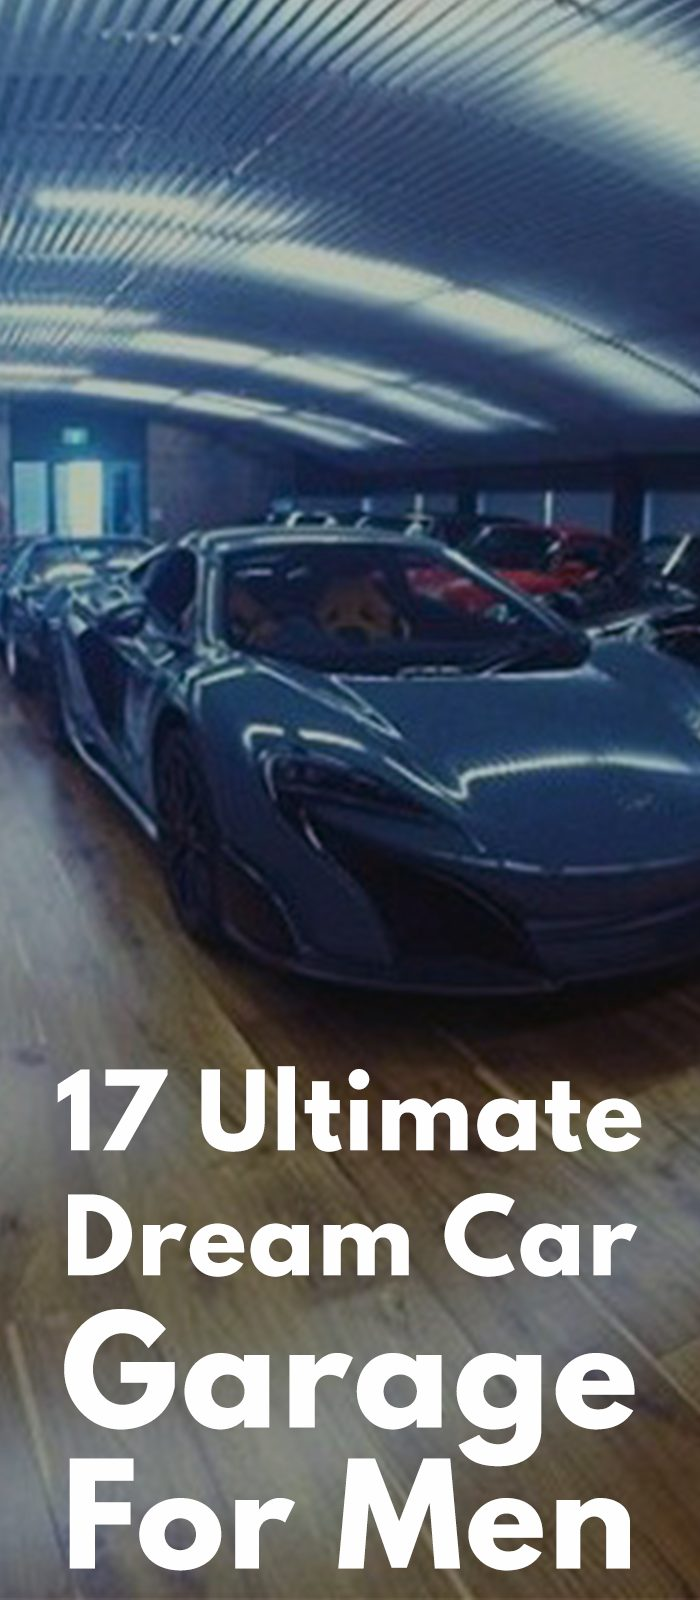 17 Ultimate Dream Car Garage For Men